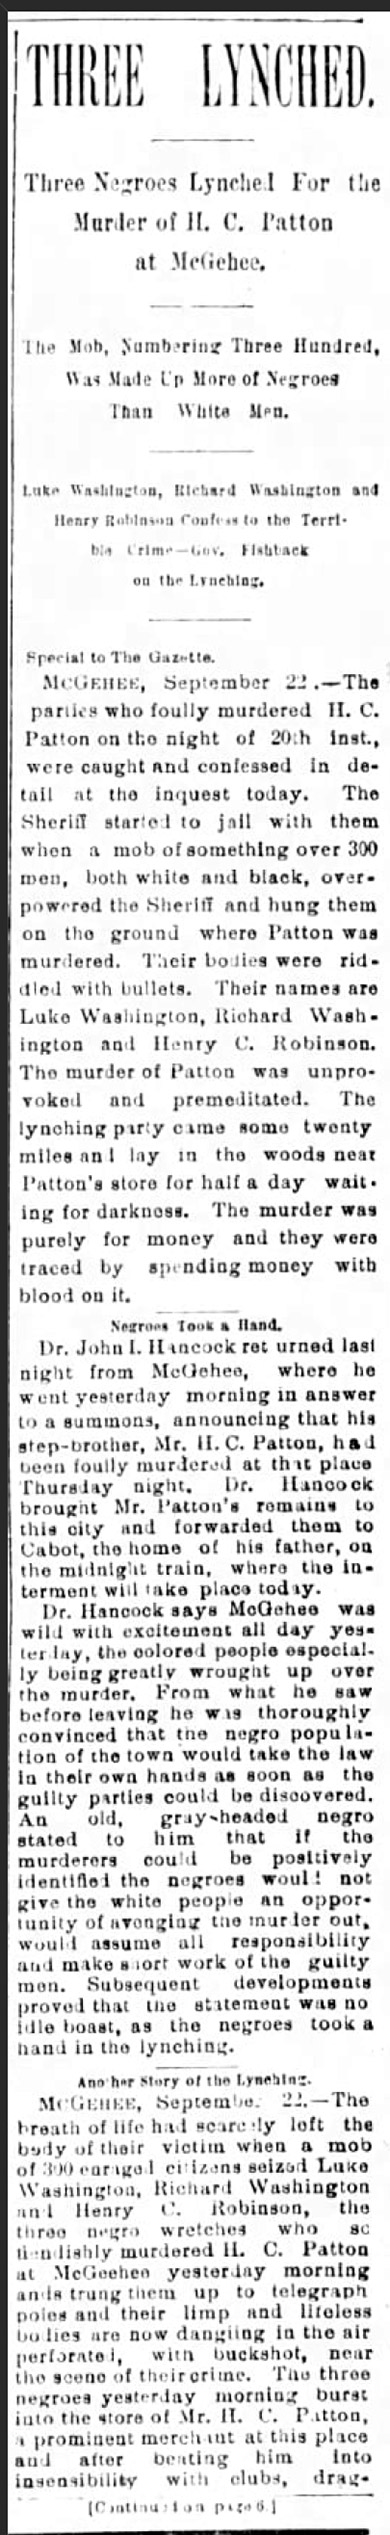 McGehee Lynching Article